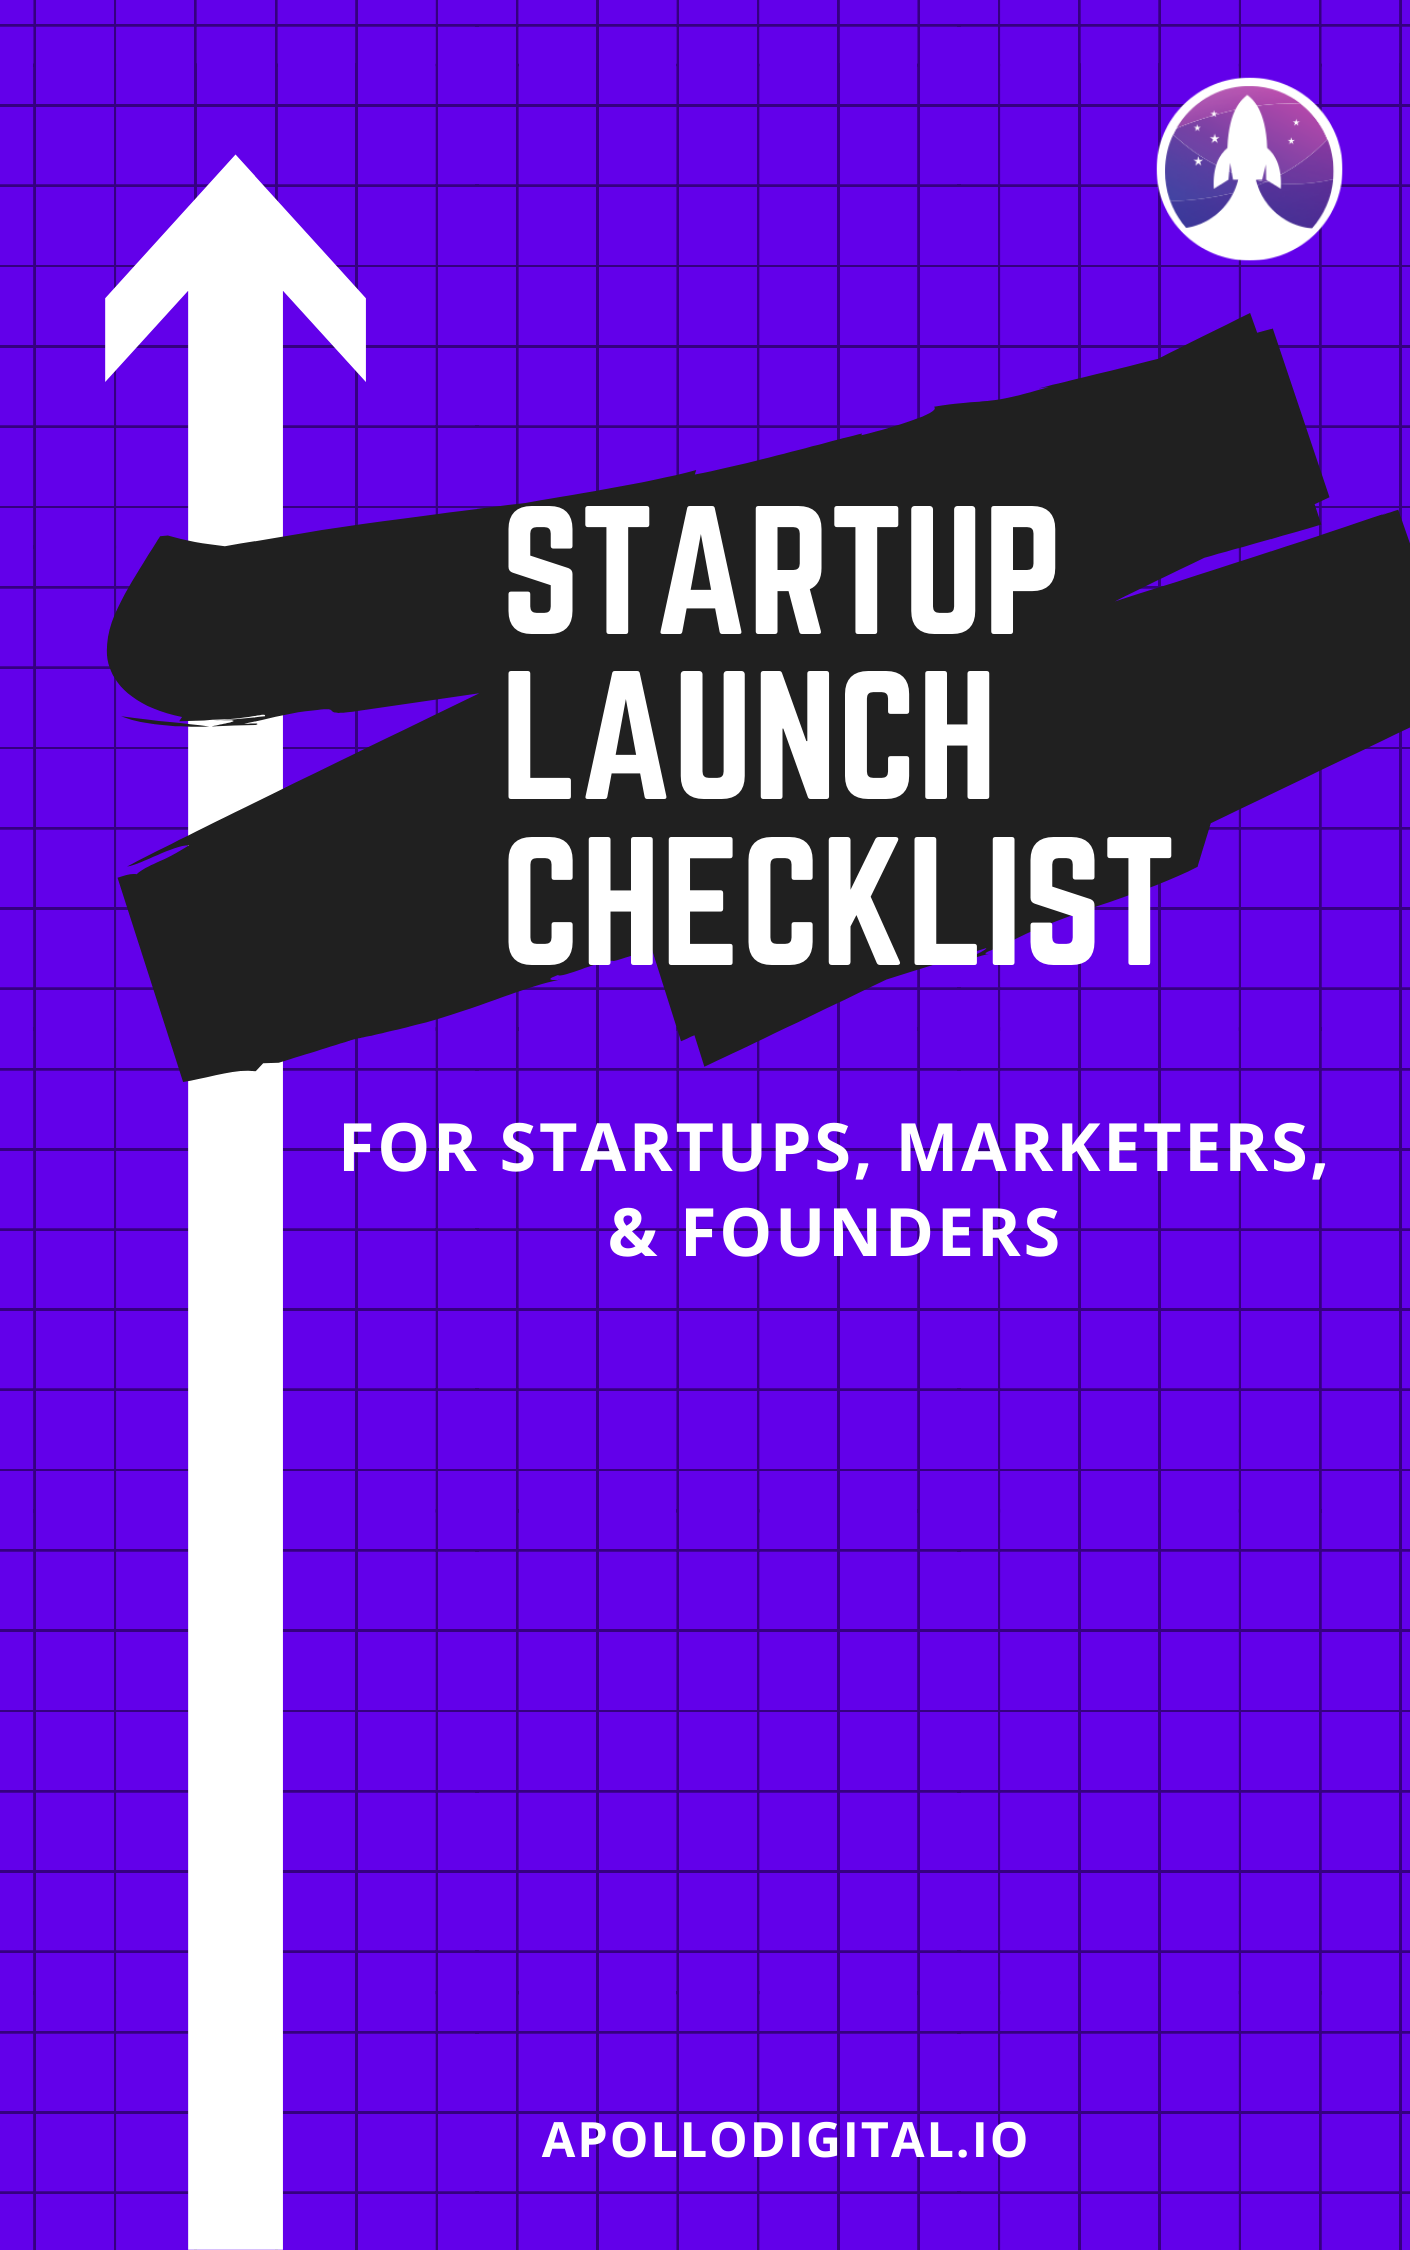 apollo digital startup launch checklist